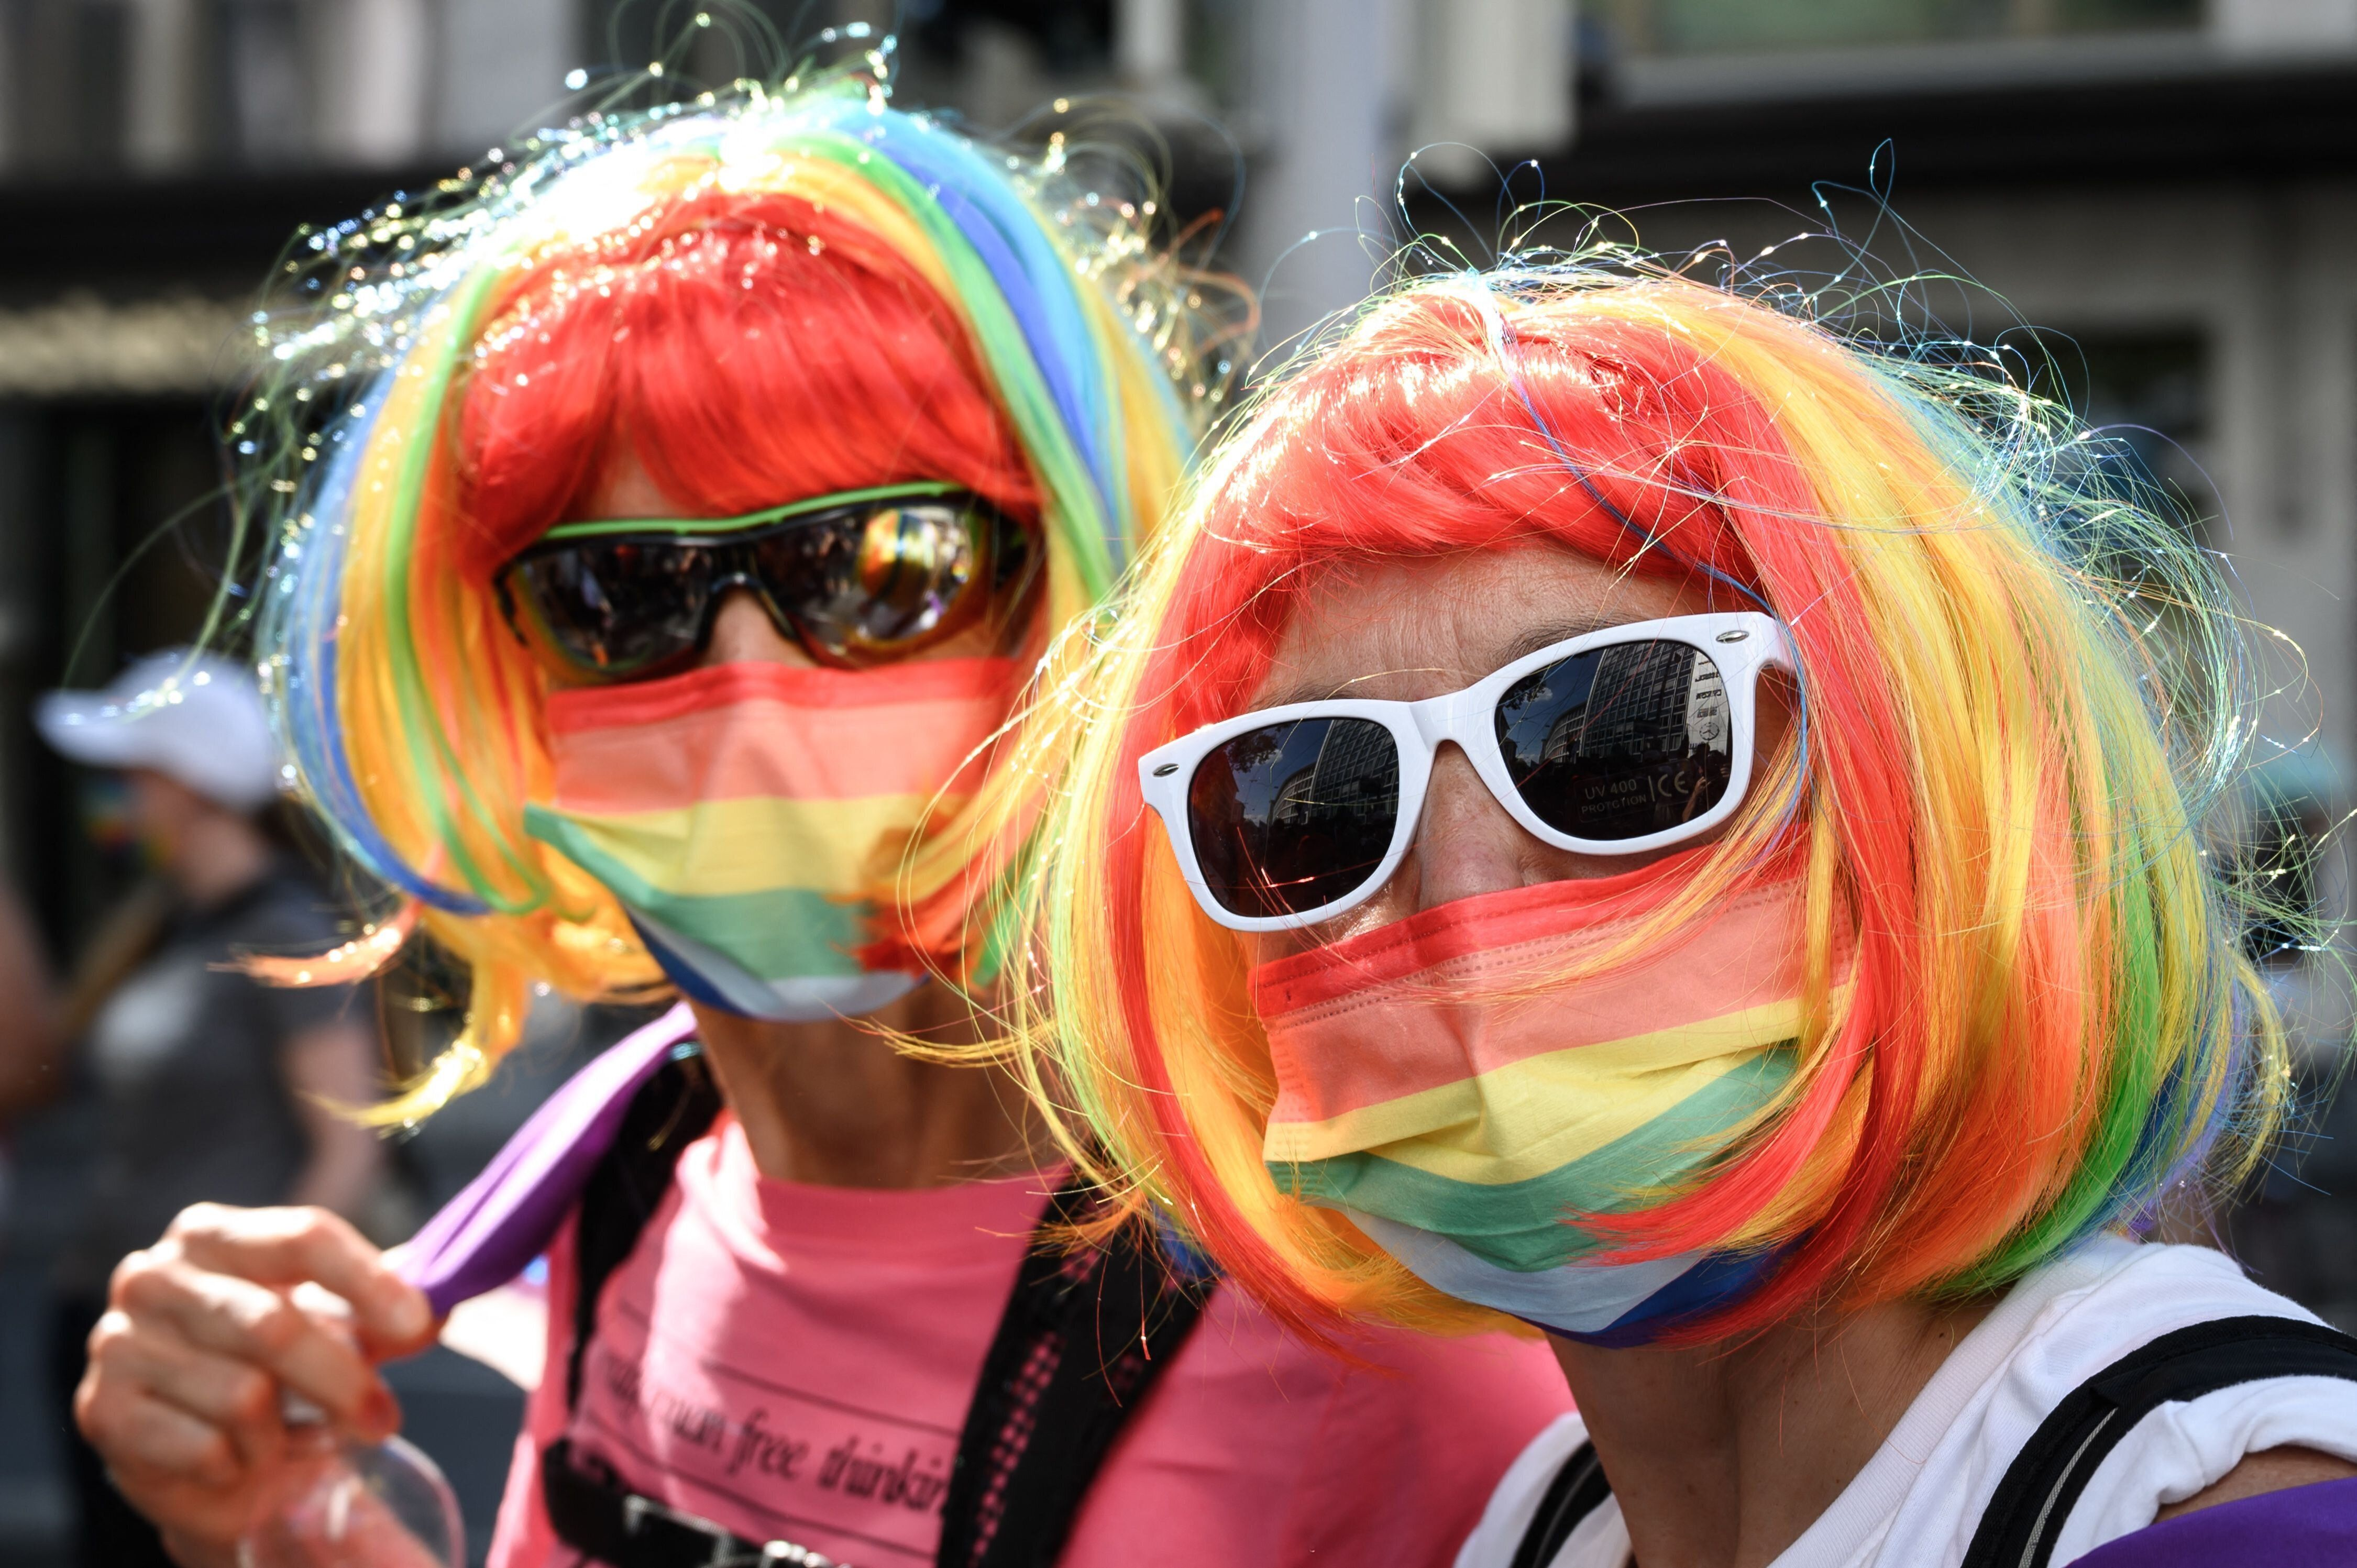 LGBTQ community members and allies take part in the Zurich Pride on Sept. 4.